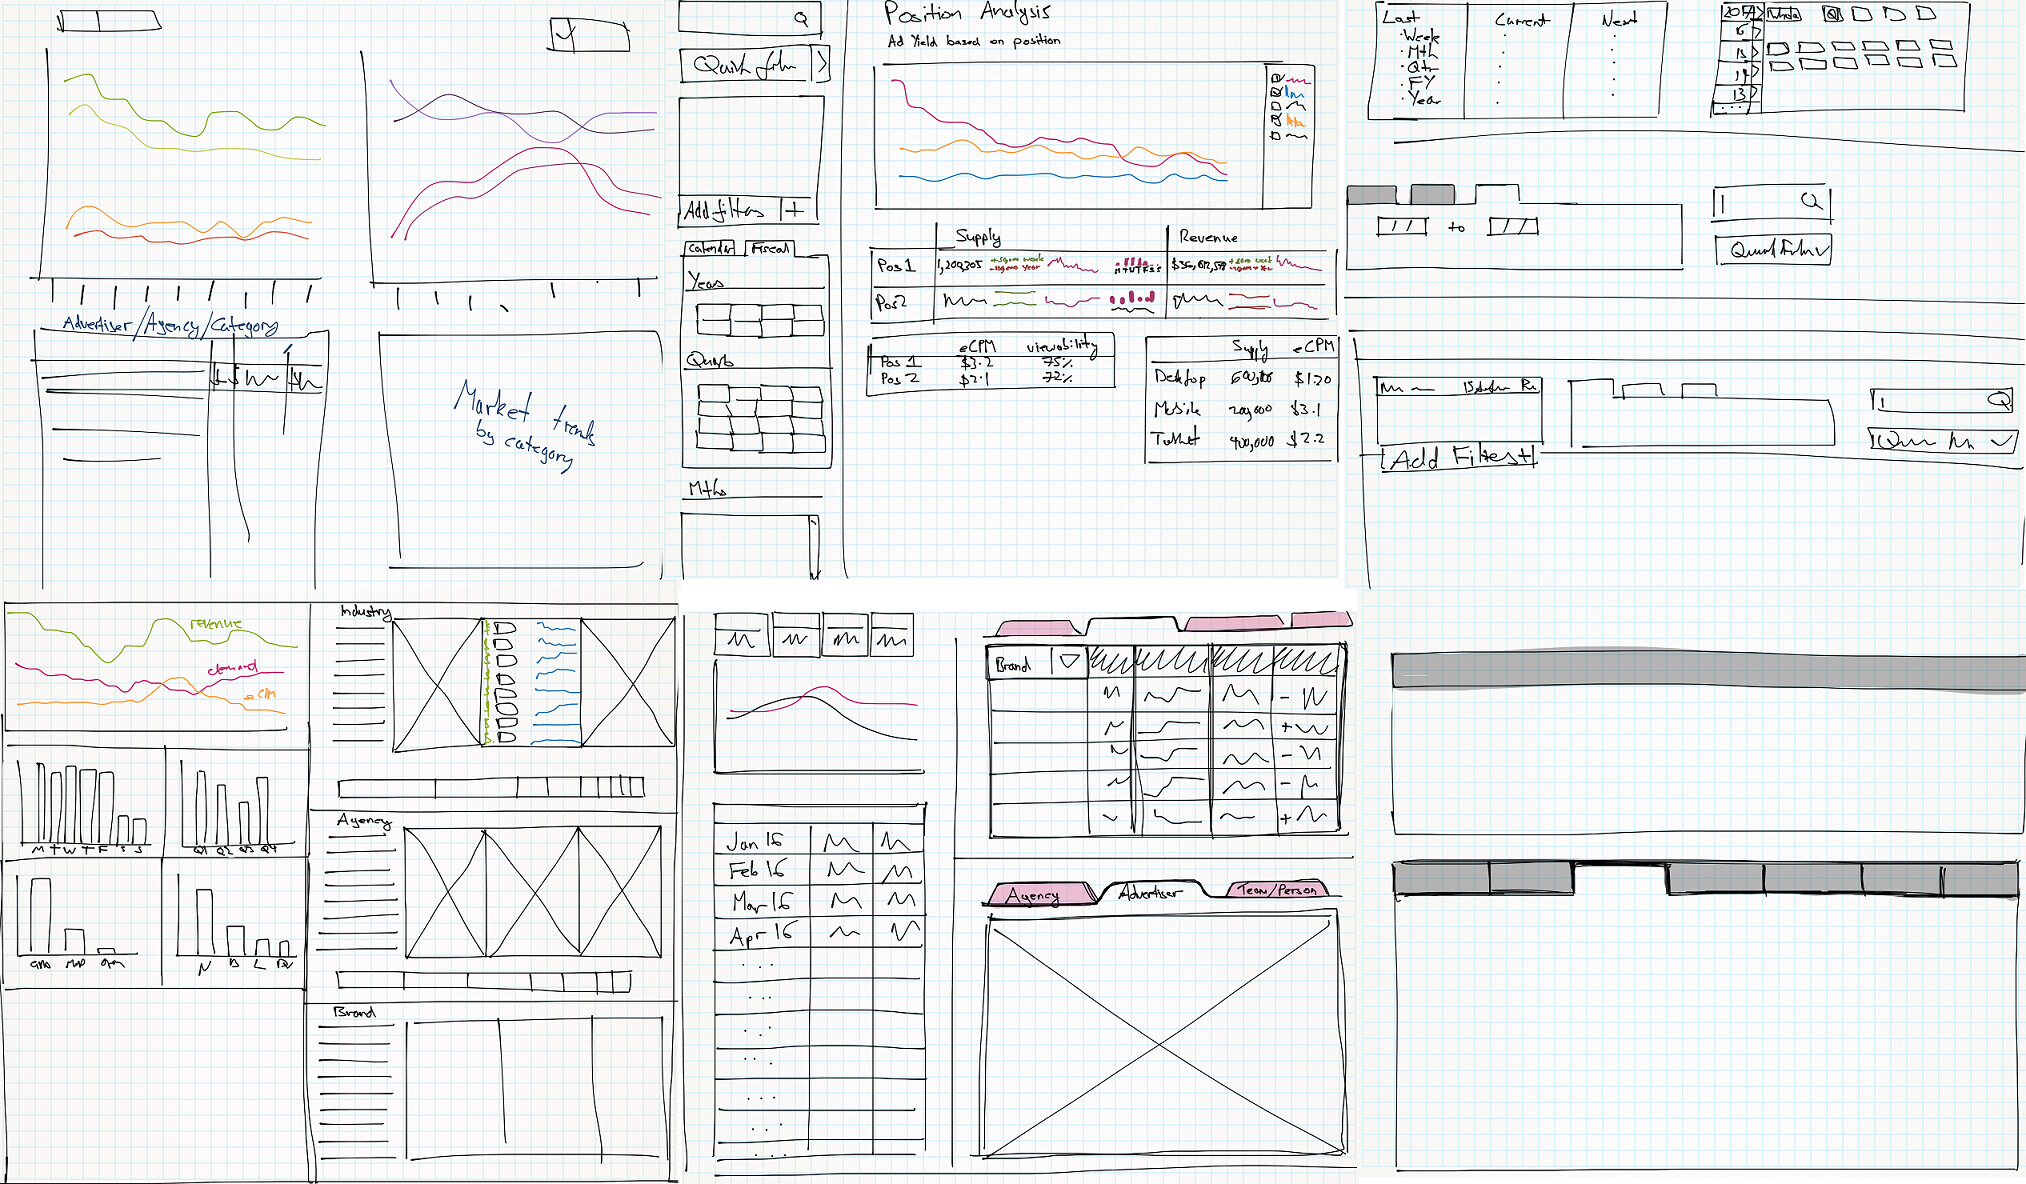 Collection of screenshots of low fidelity sketches of dashboards